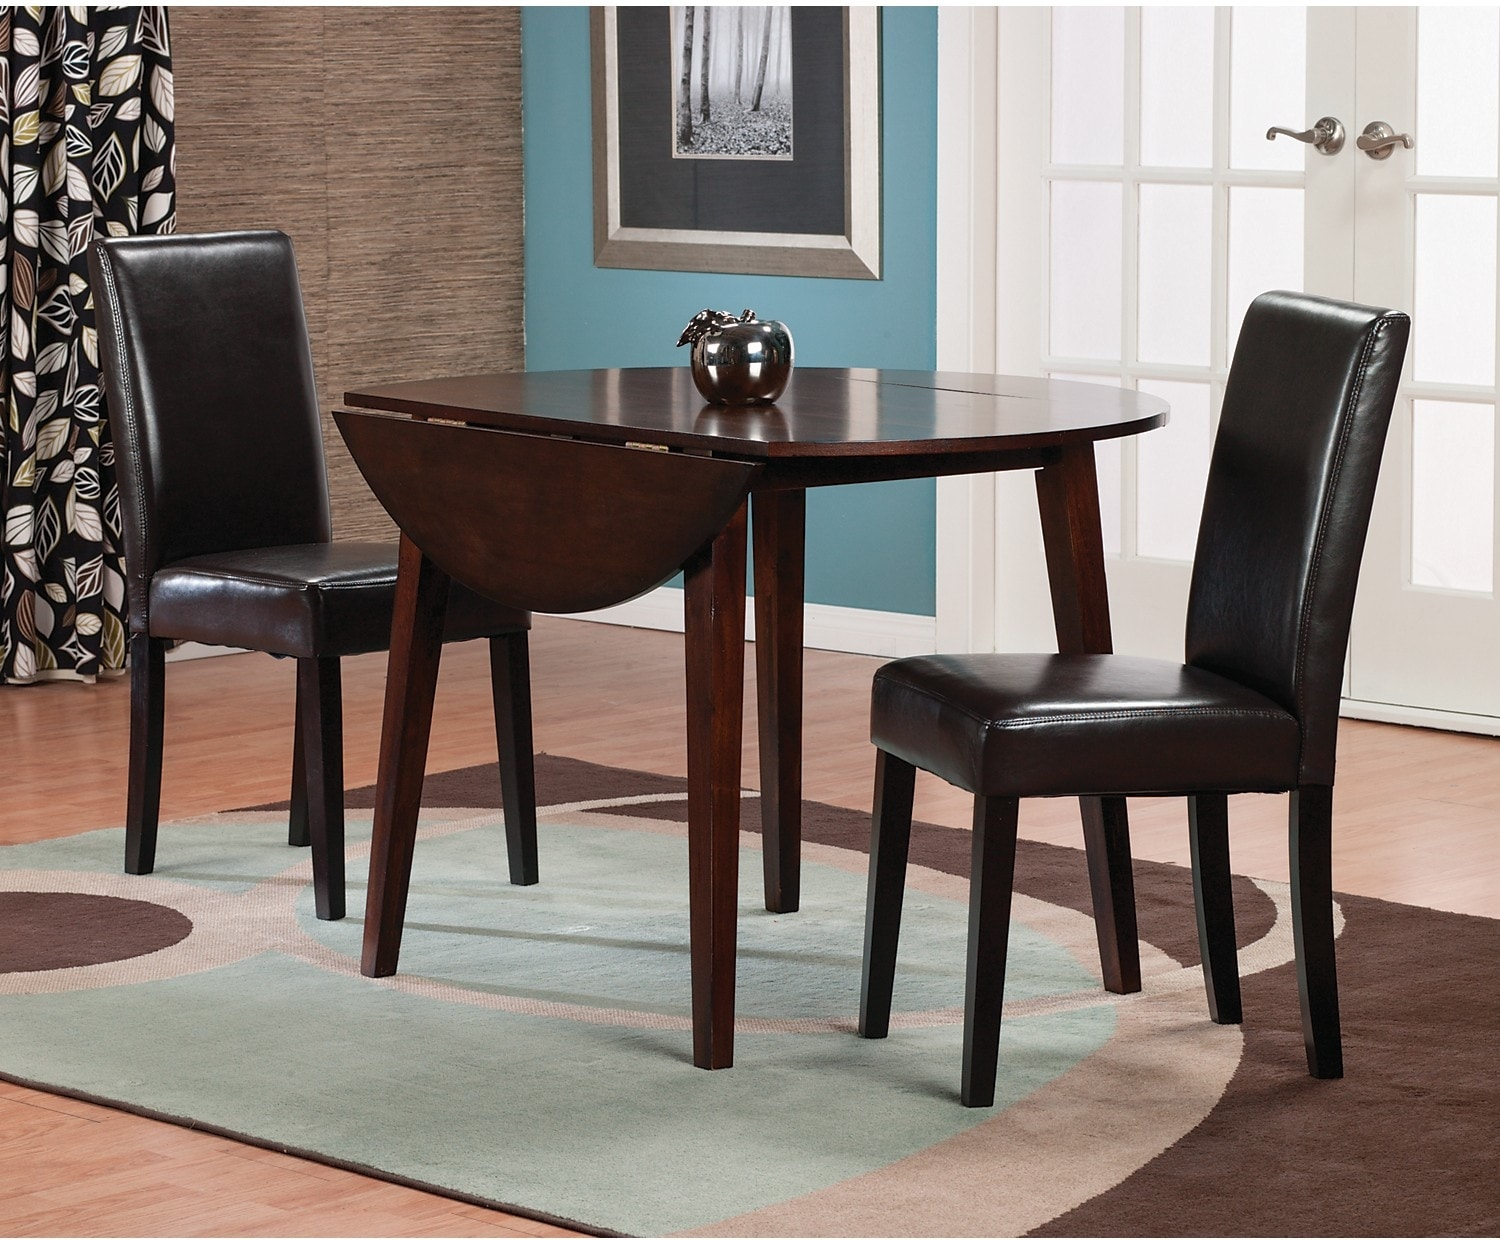 Adara 3 Piece Dining Package w/ Brown PU Chairs